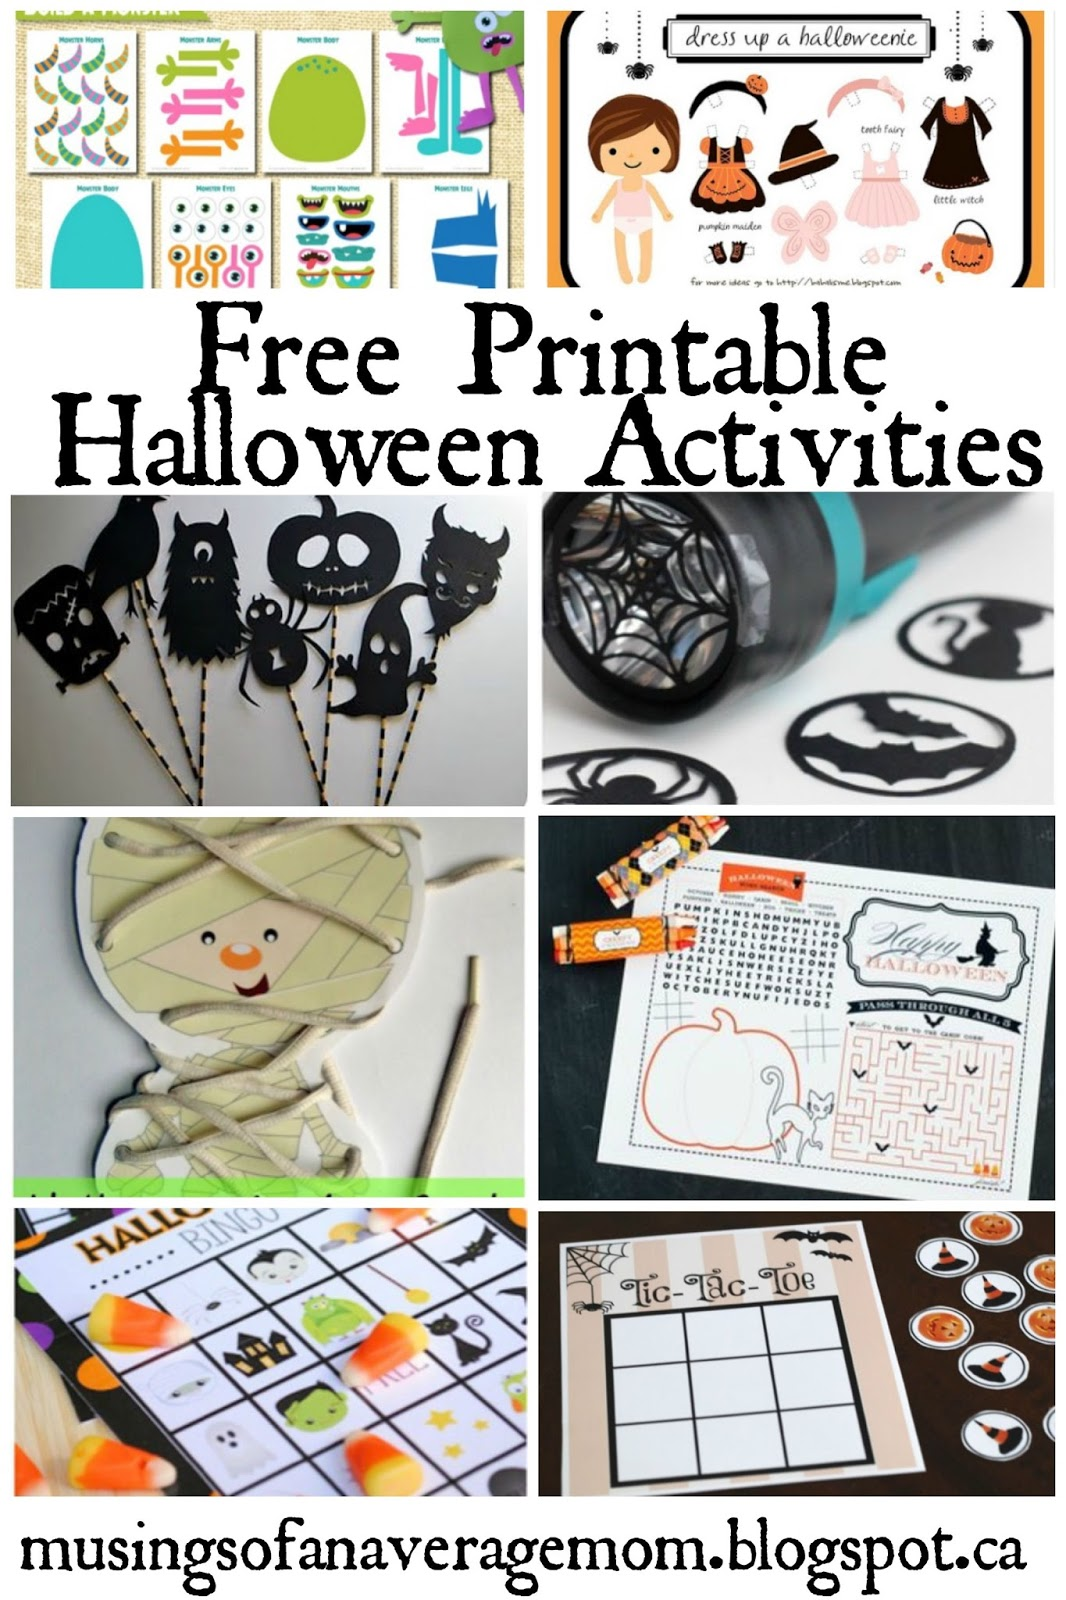 Musings of an Average Mom: Free Printable Games and Activities